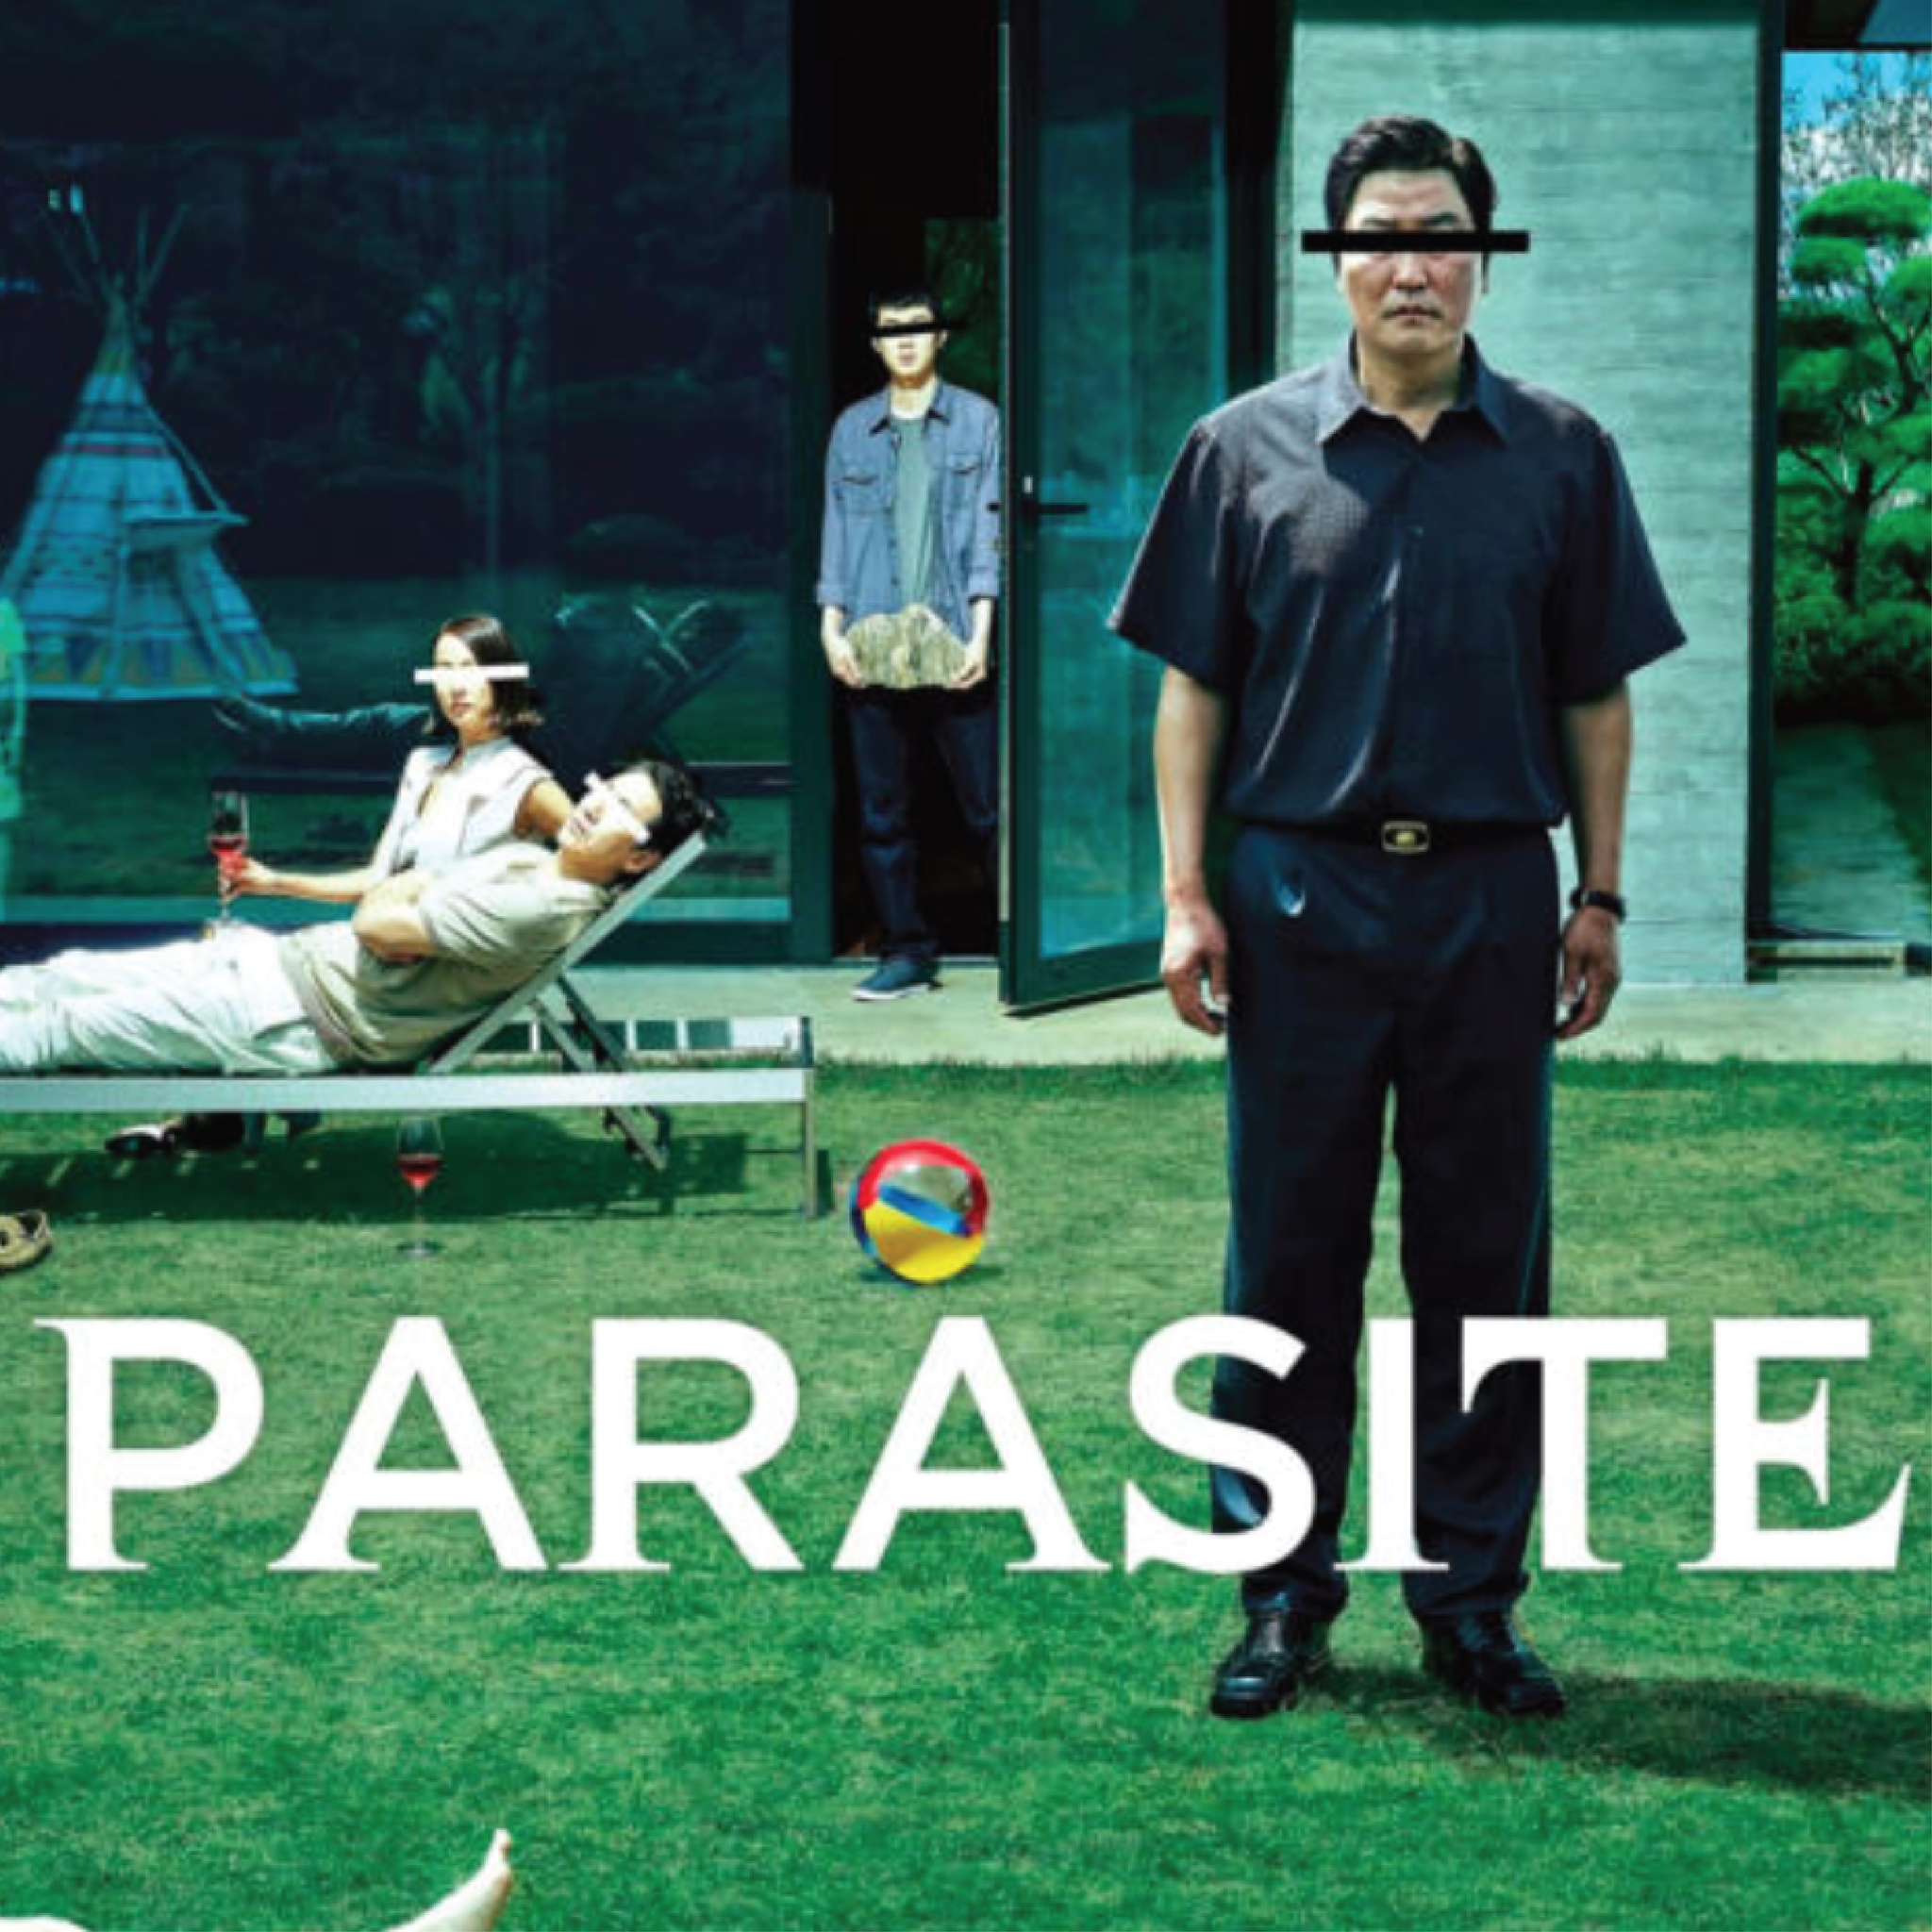 THE NO-SPOILERS GUIDE TO PARASITE